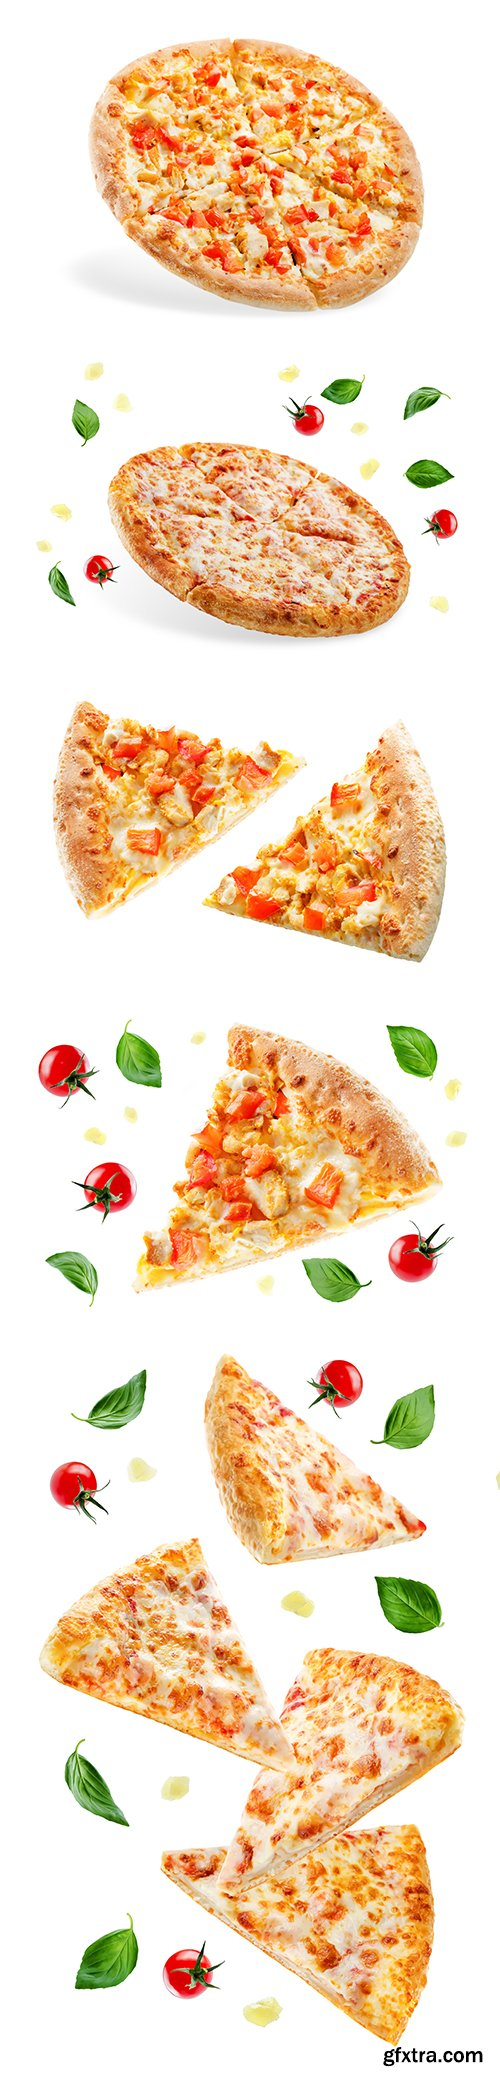 Pizza-3 Isolated - 10xJPGs